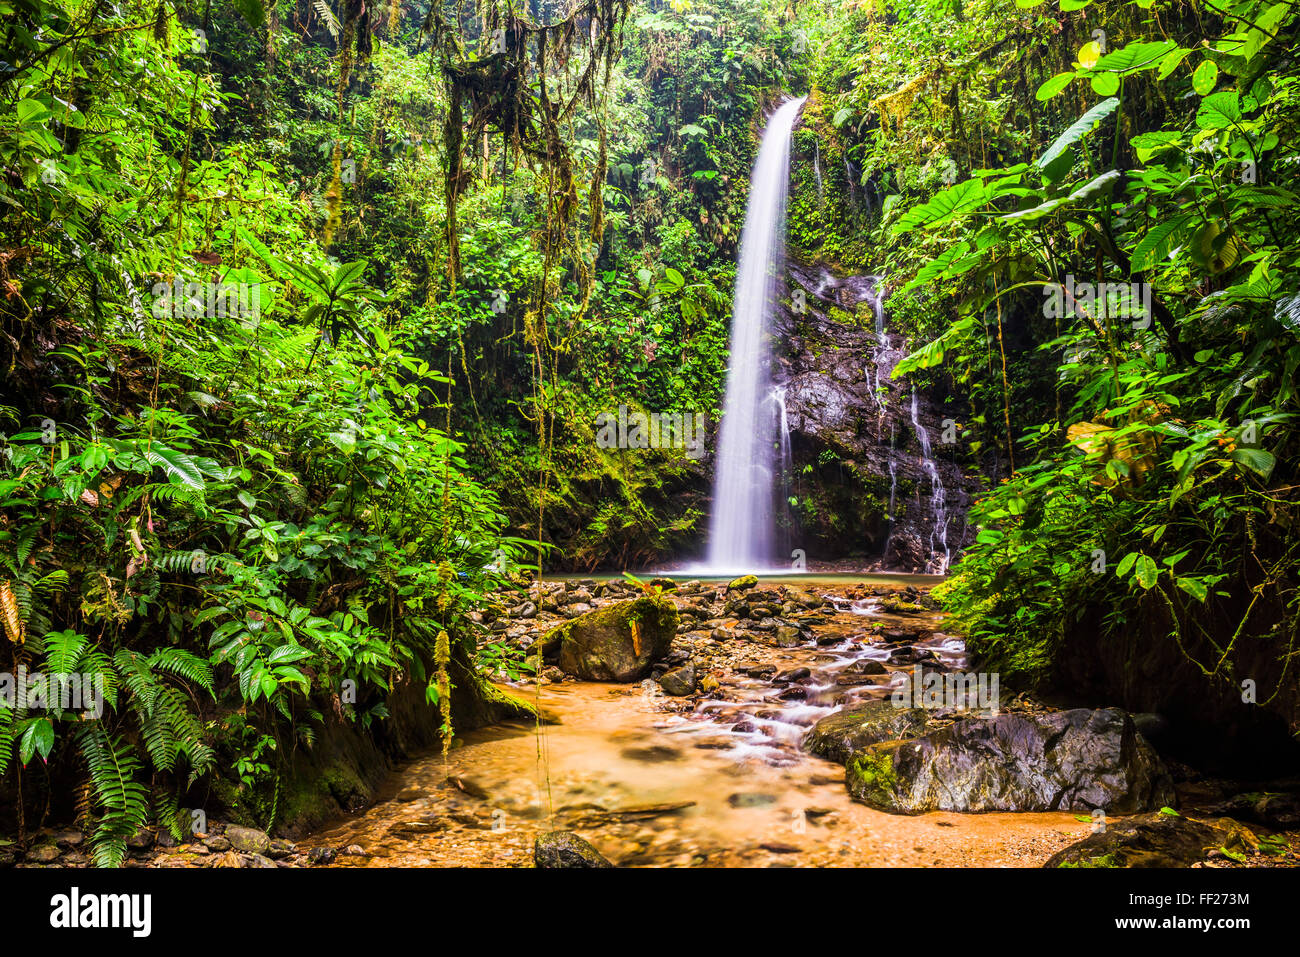 WaterfaRMRM San Vincente dans une zone d'jungRMe caRMRMed CRMoud Mashpi Forest dans le Choco Rainforest, Equateur, Photo Stock